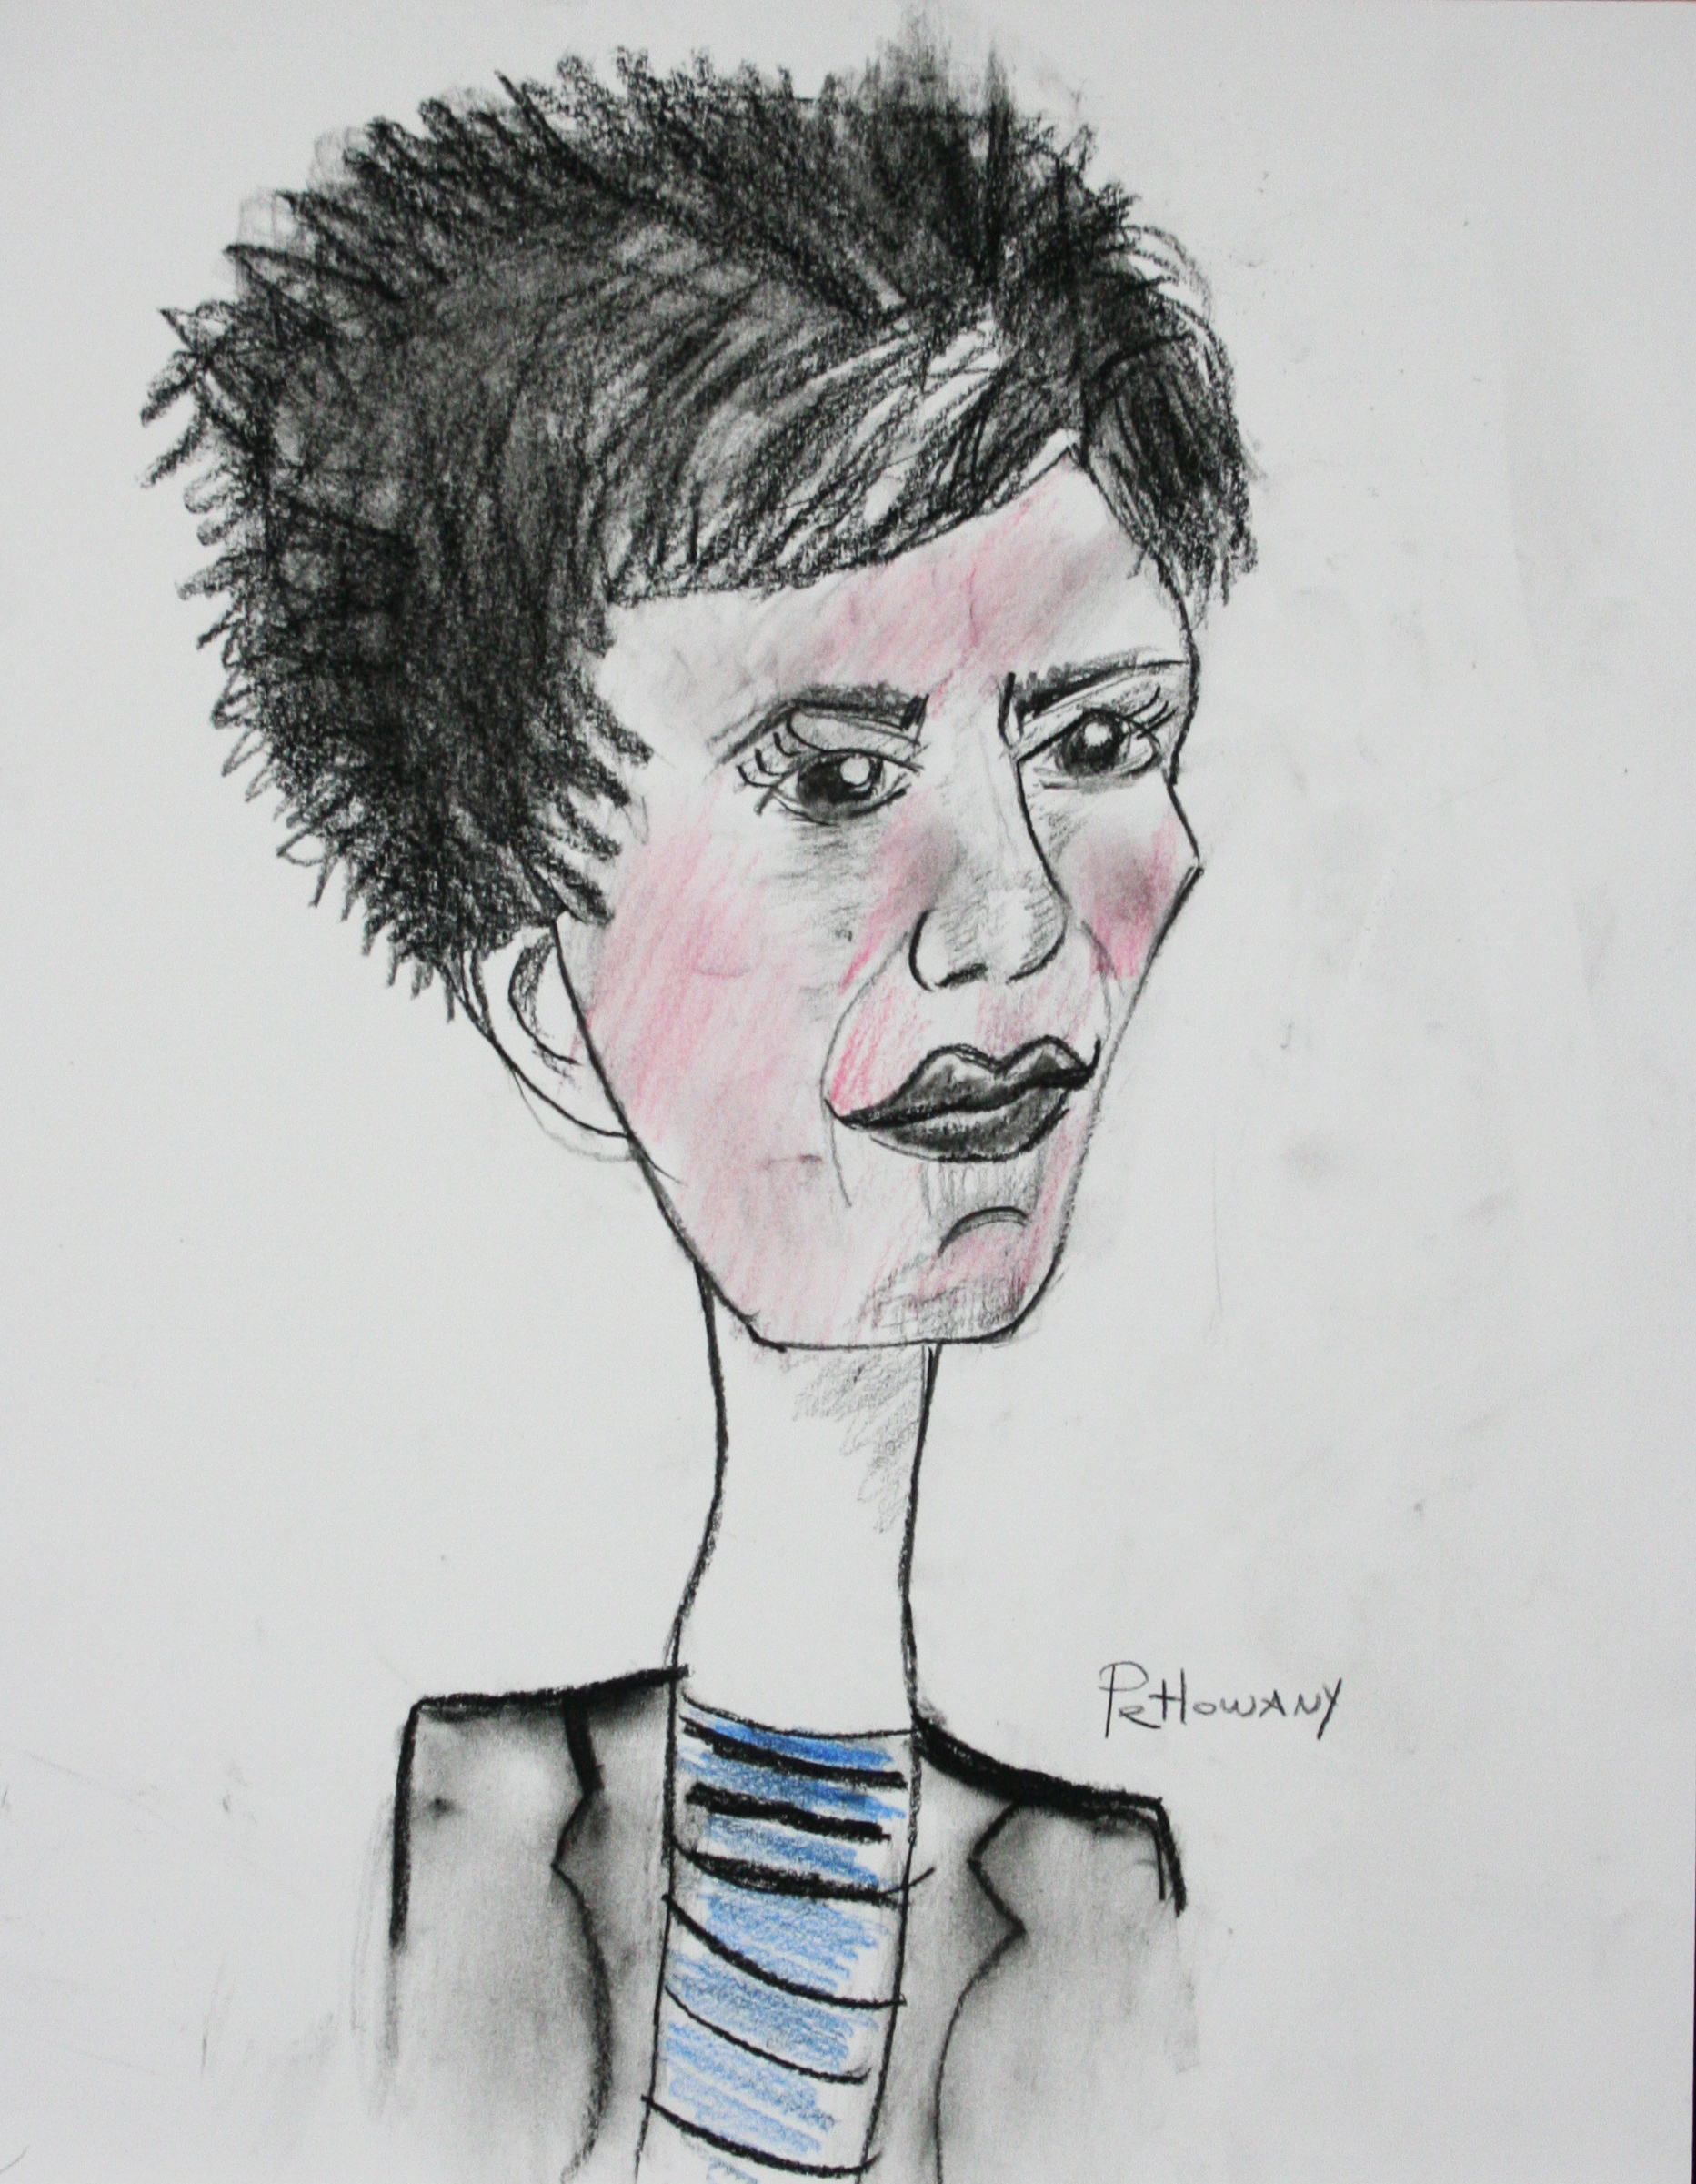 Paula Petlowany did this caricature.